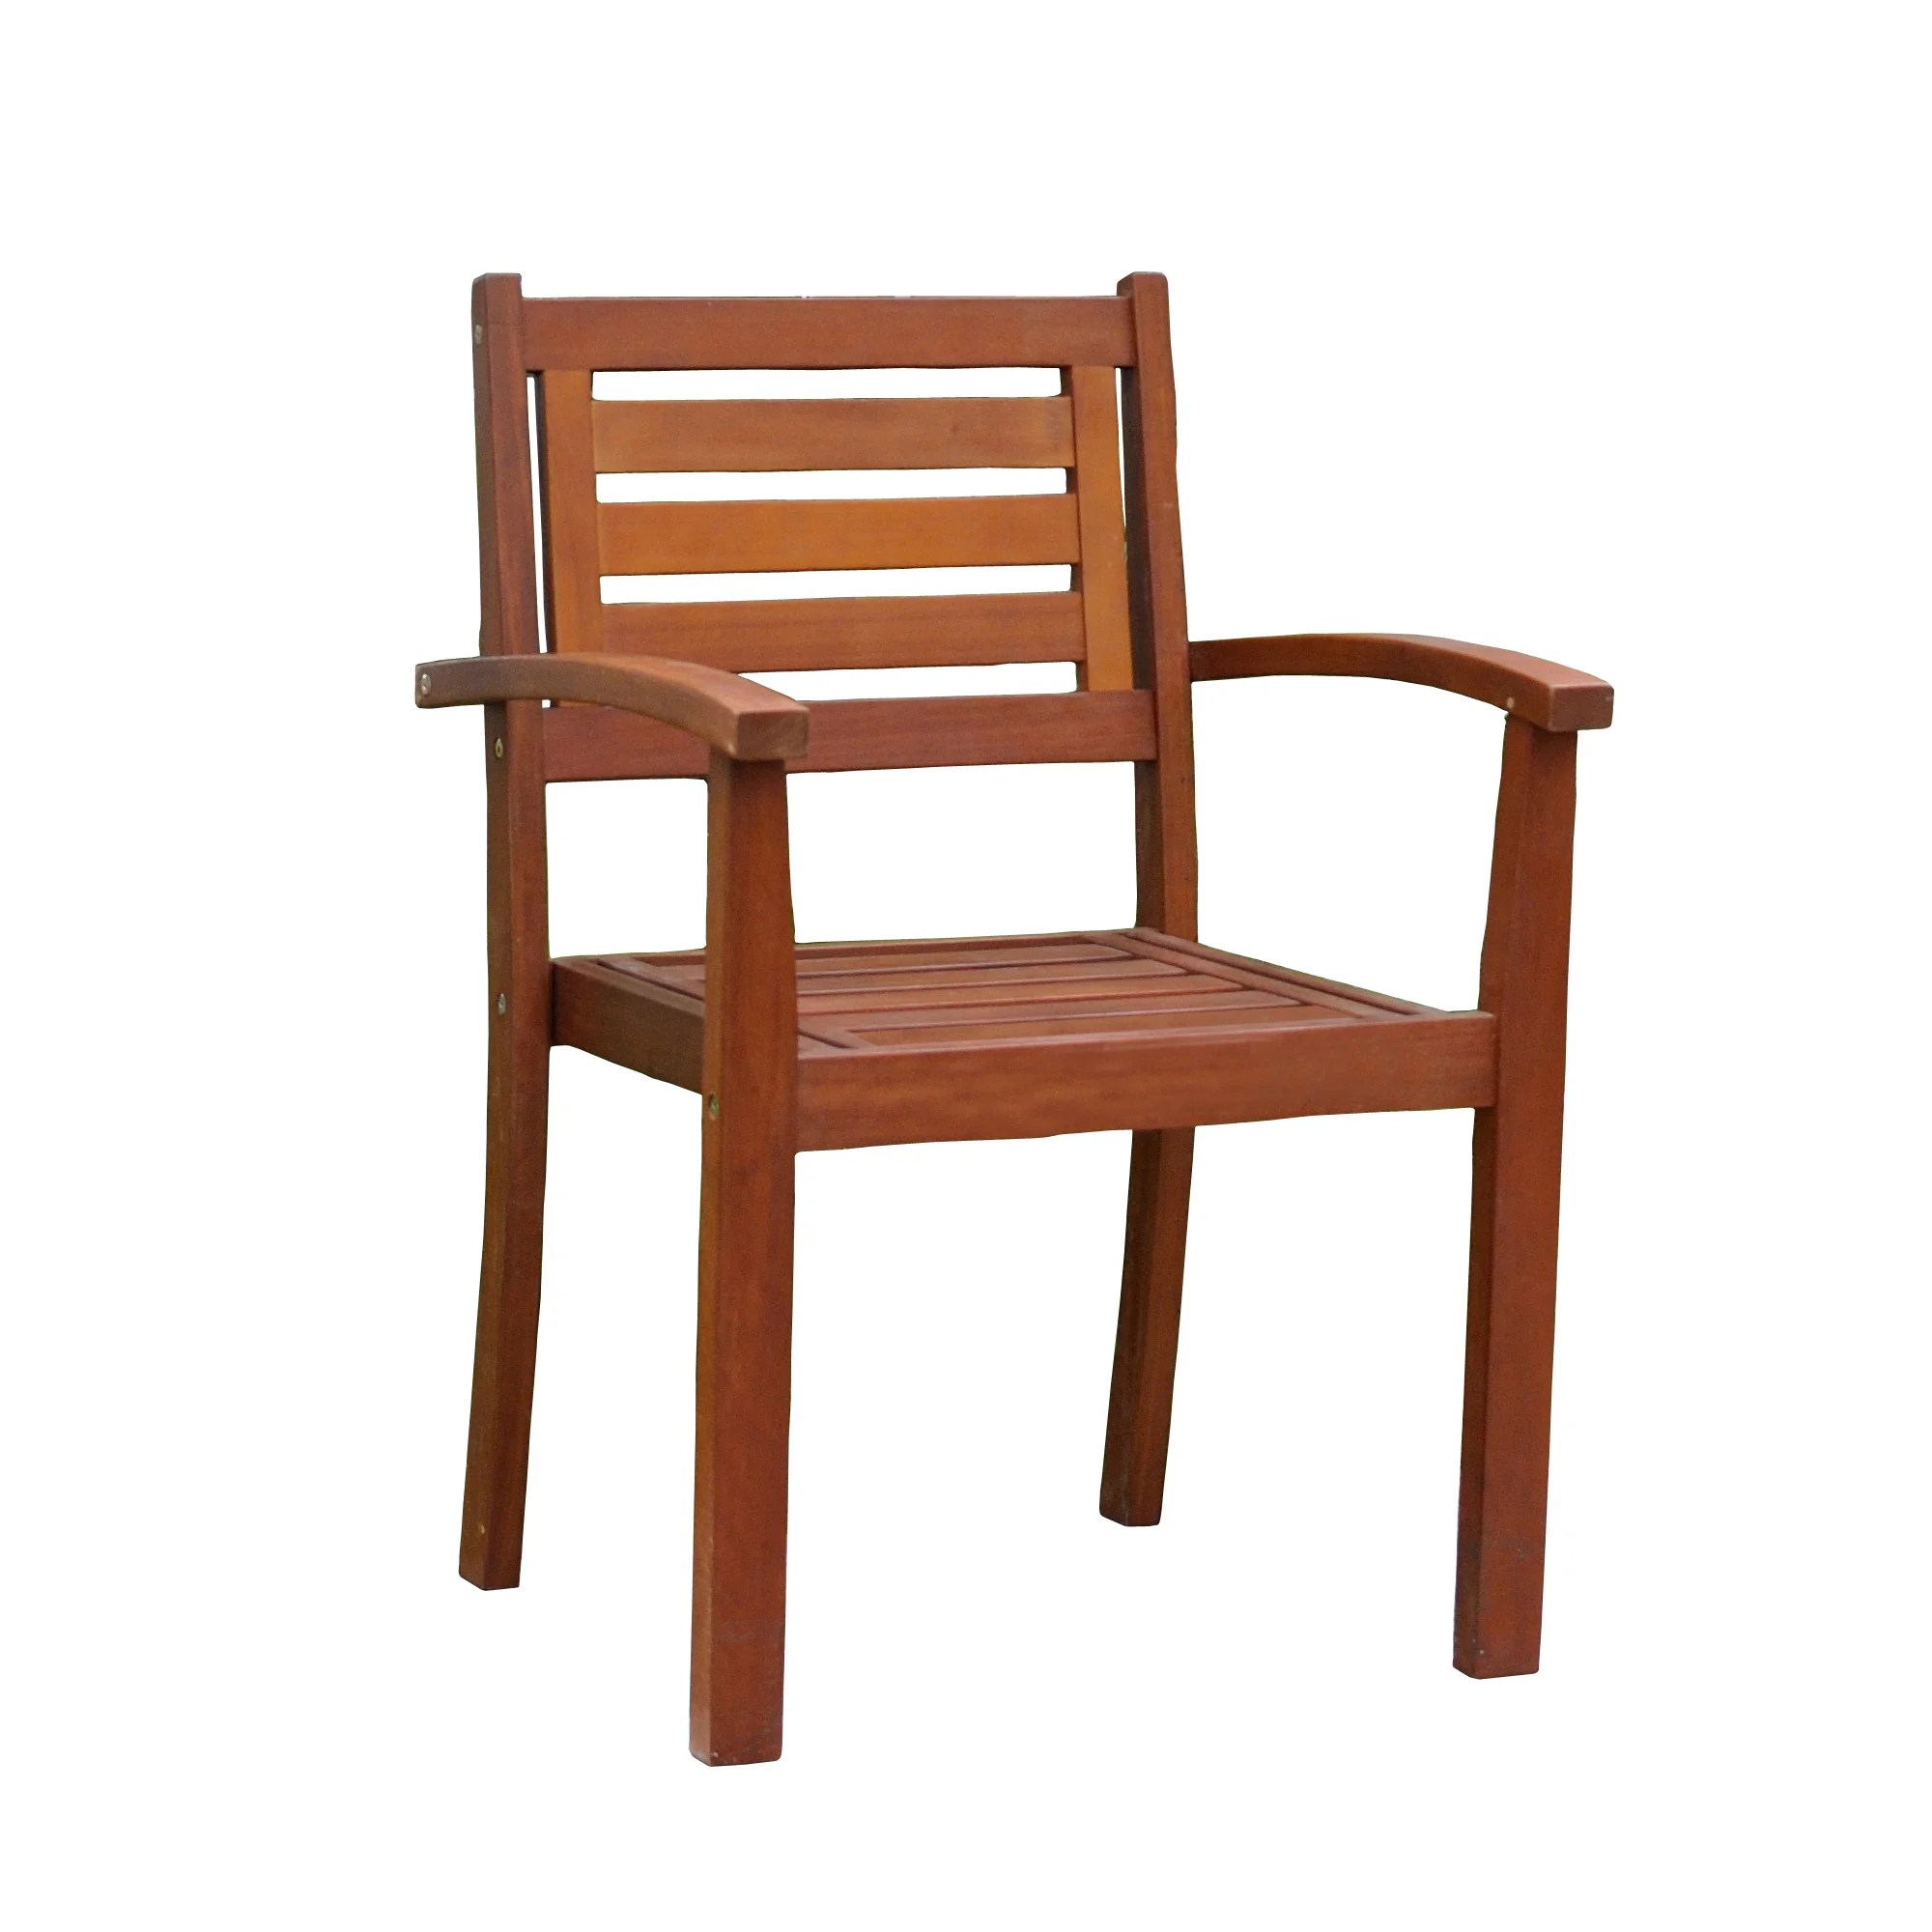 merry garden adirondack chair patio glides oval products brown eucalyptus stacking arm free